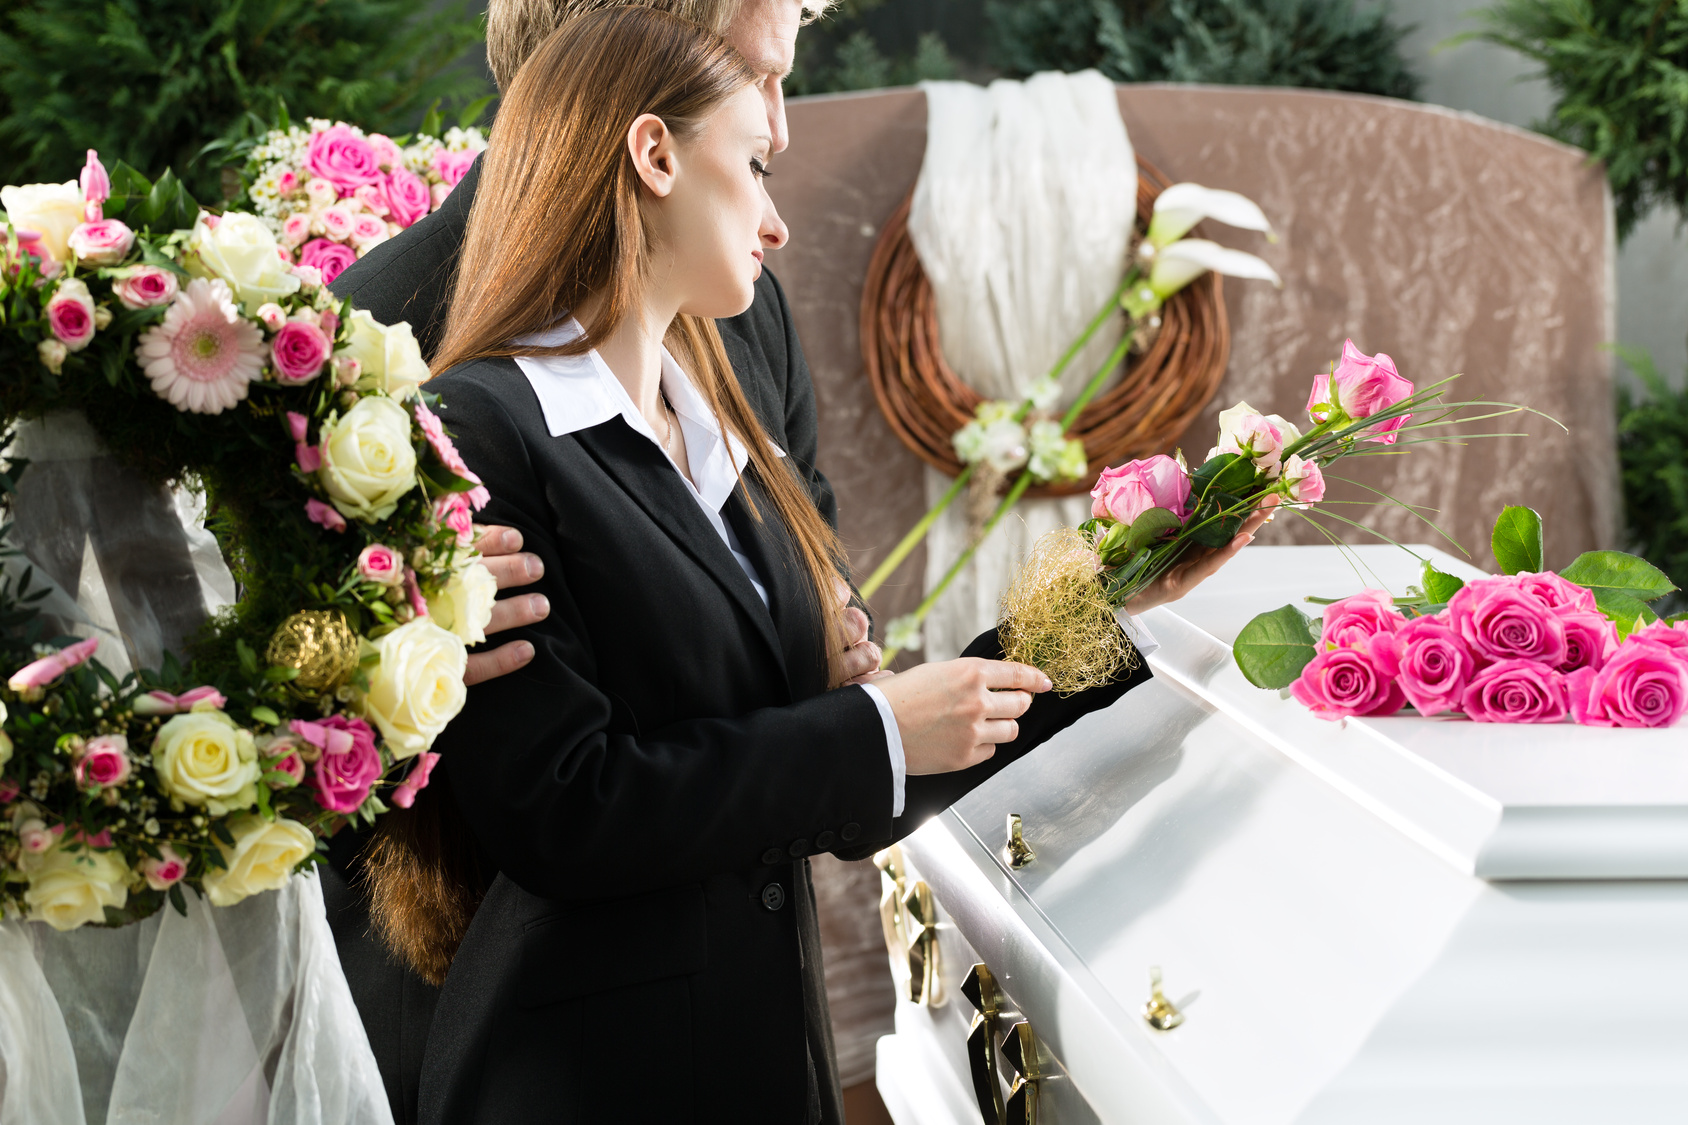 The History And Traditions Behind Funeral Flowers